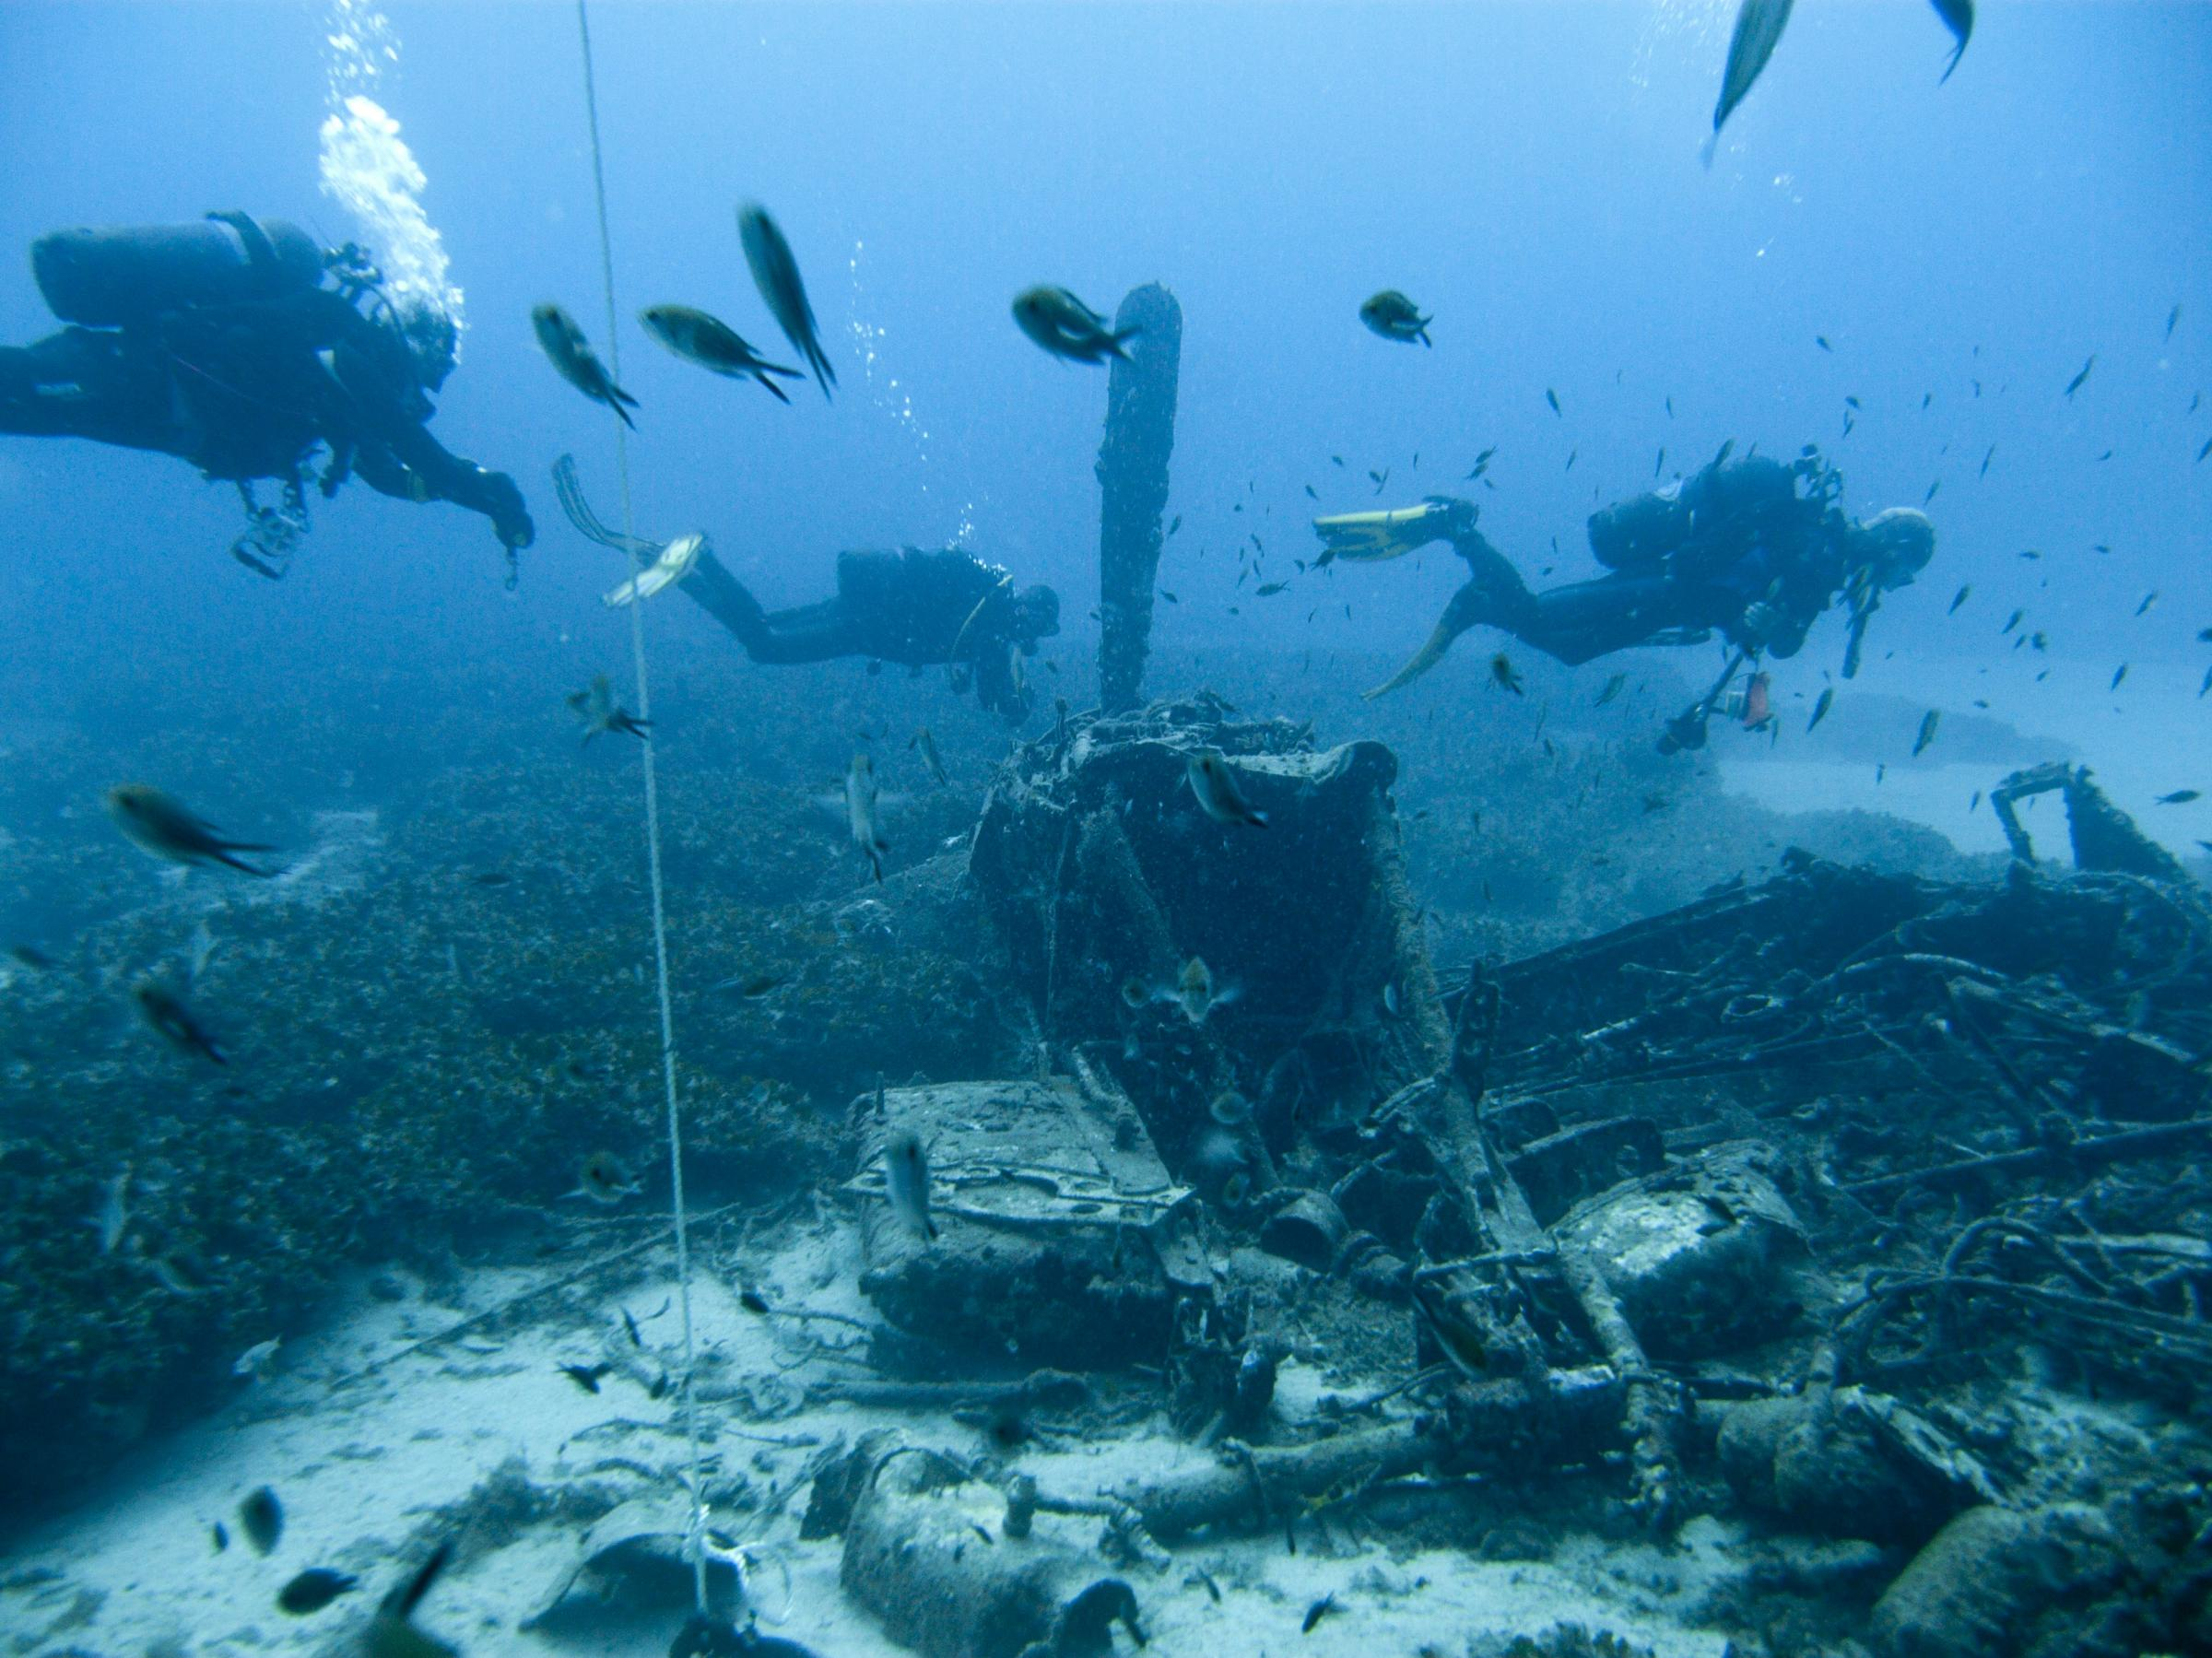 Divers at Mosquito airplane wreck